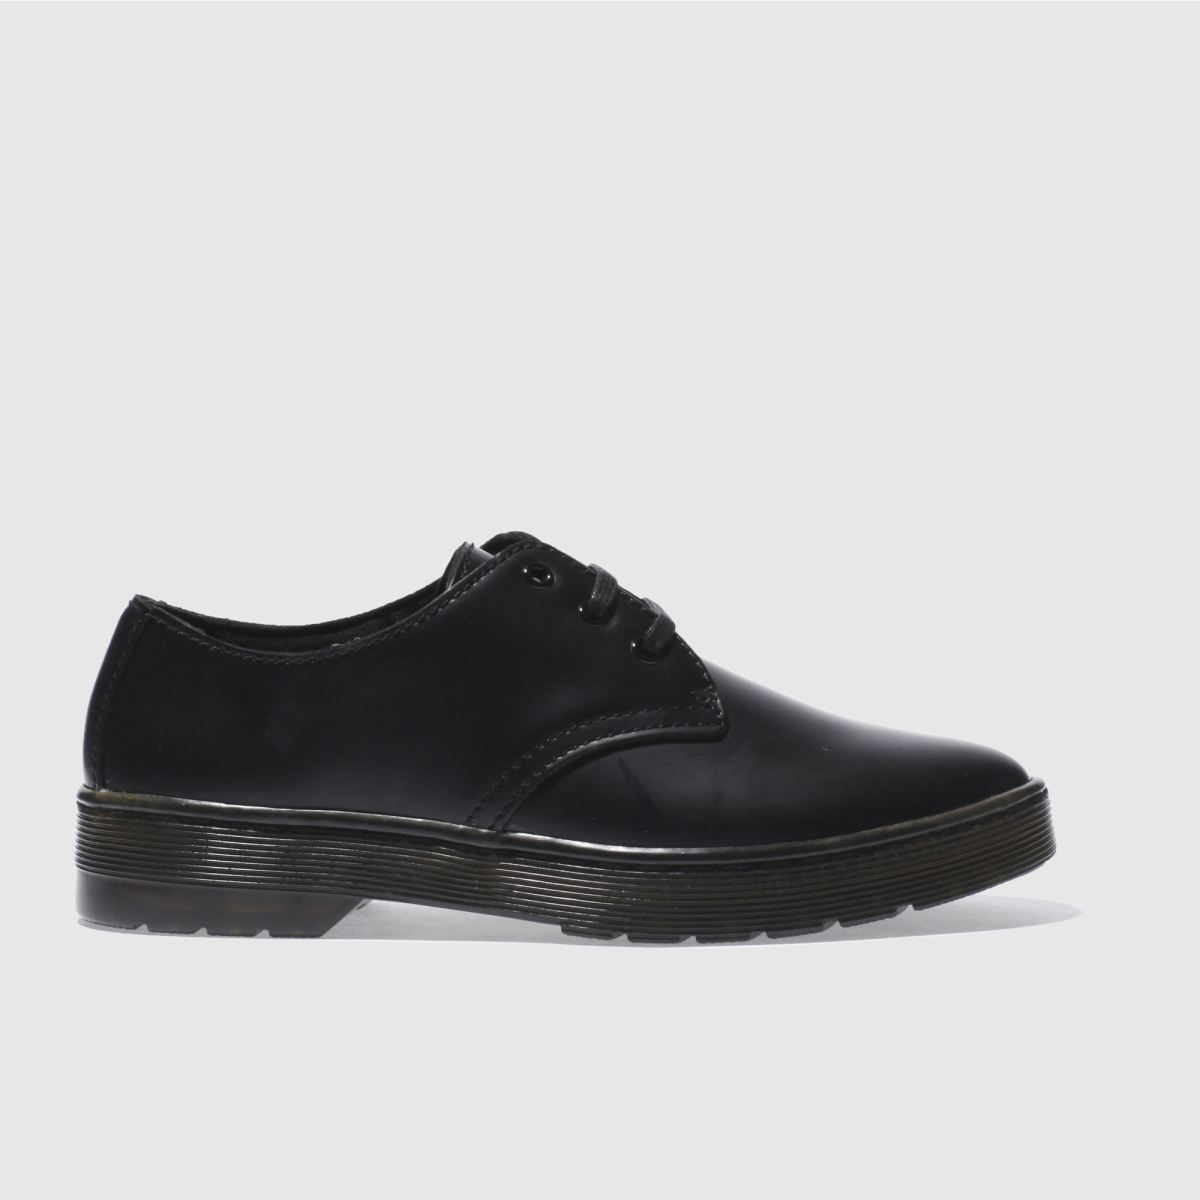 dr martens black cruise gizelle 3 eye flat shoes